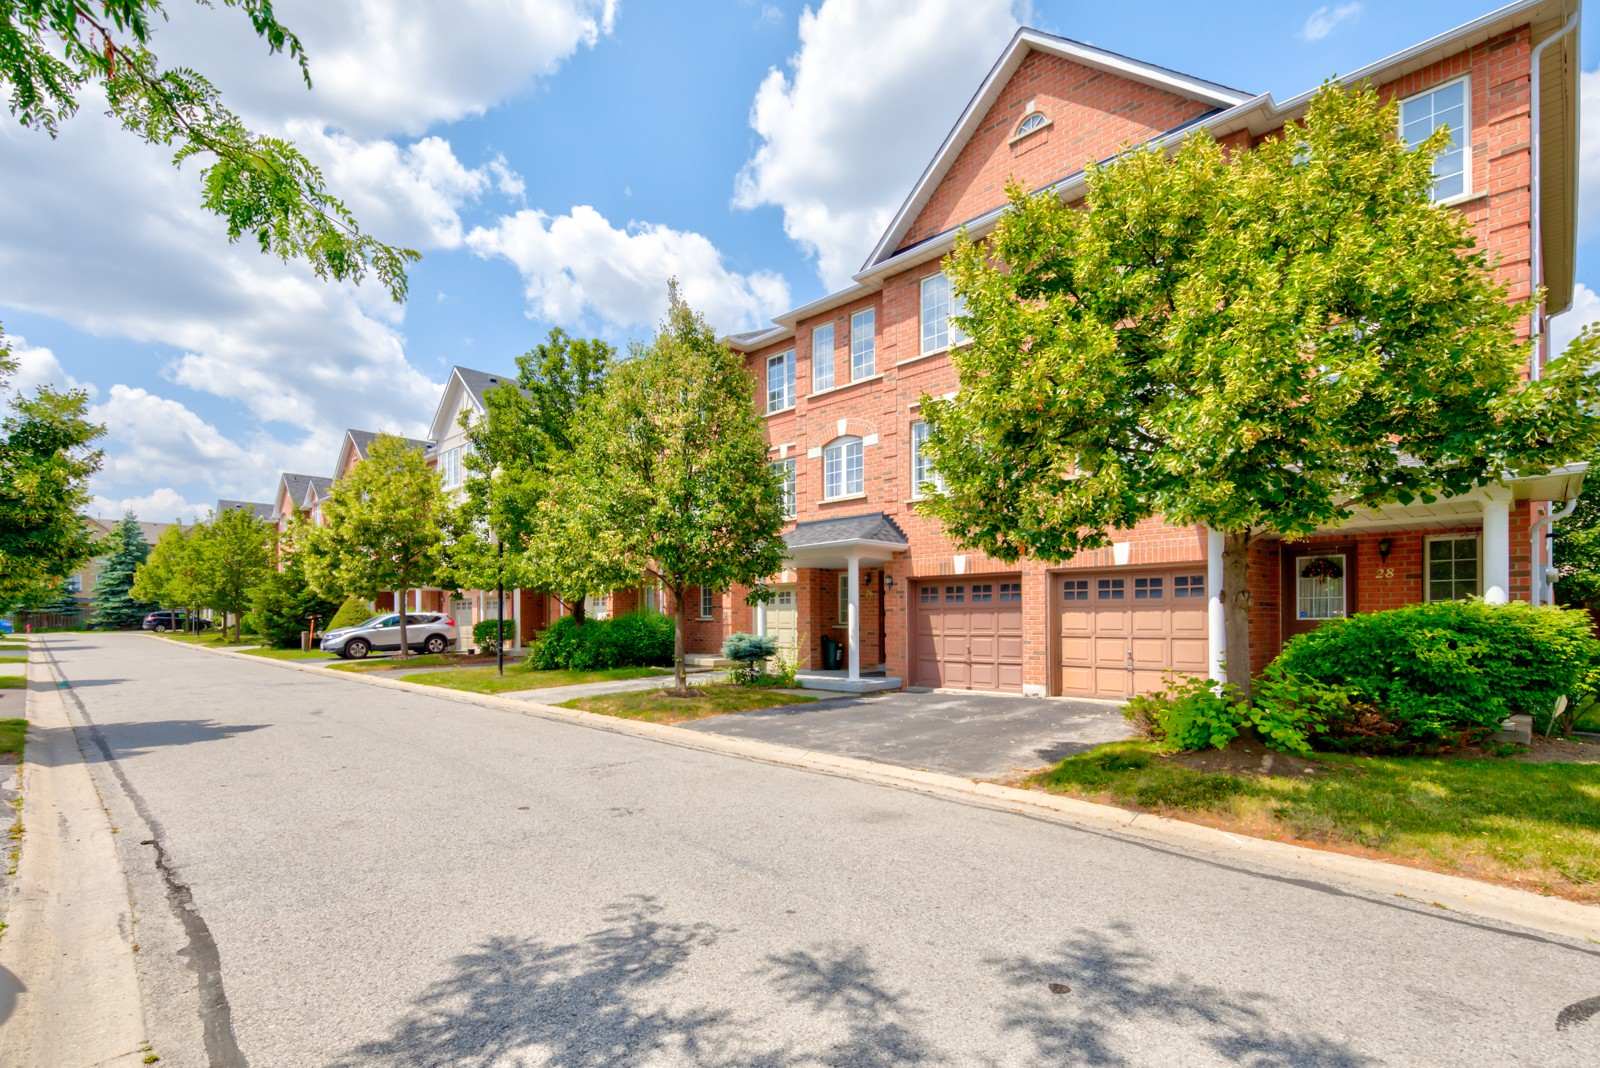 35 Interlacken Way Townhouses at 22 Interlacken Way, Markham 0